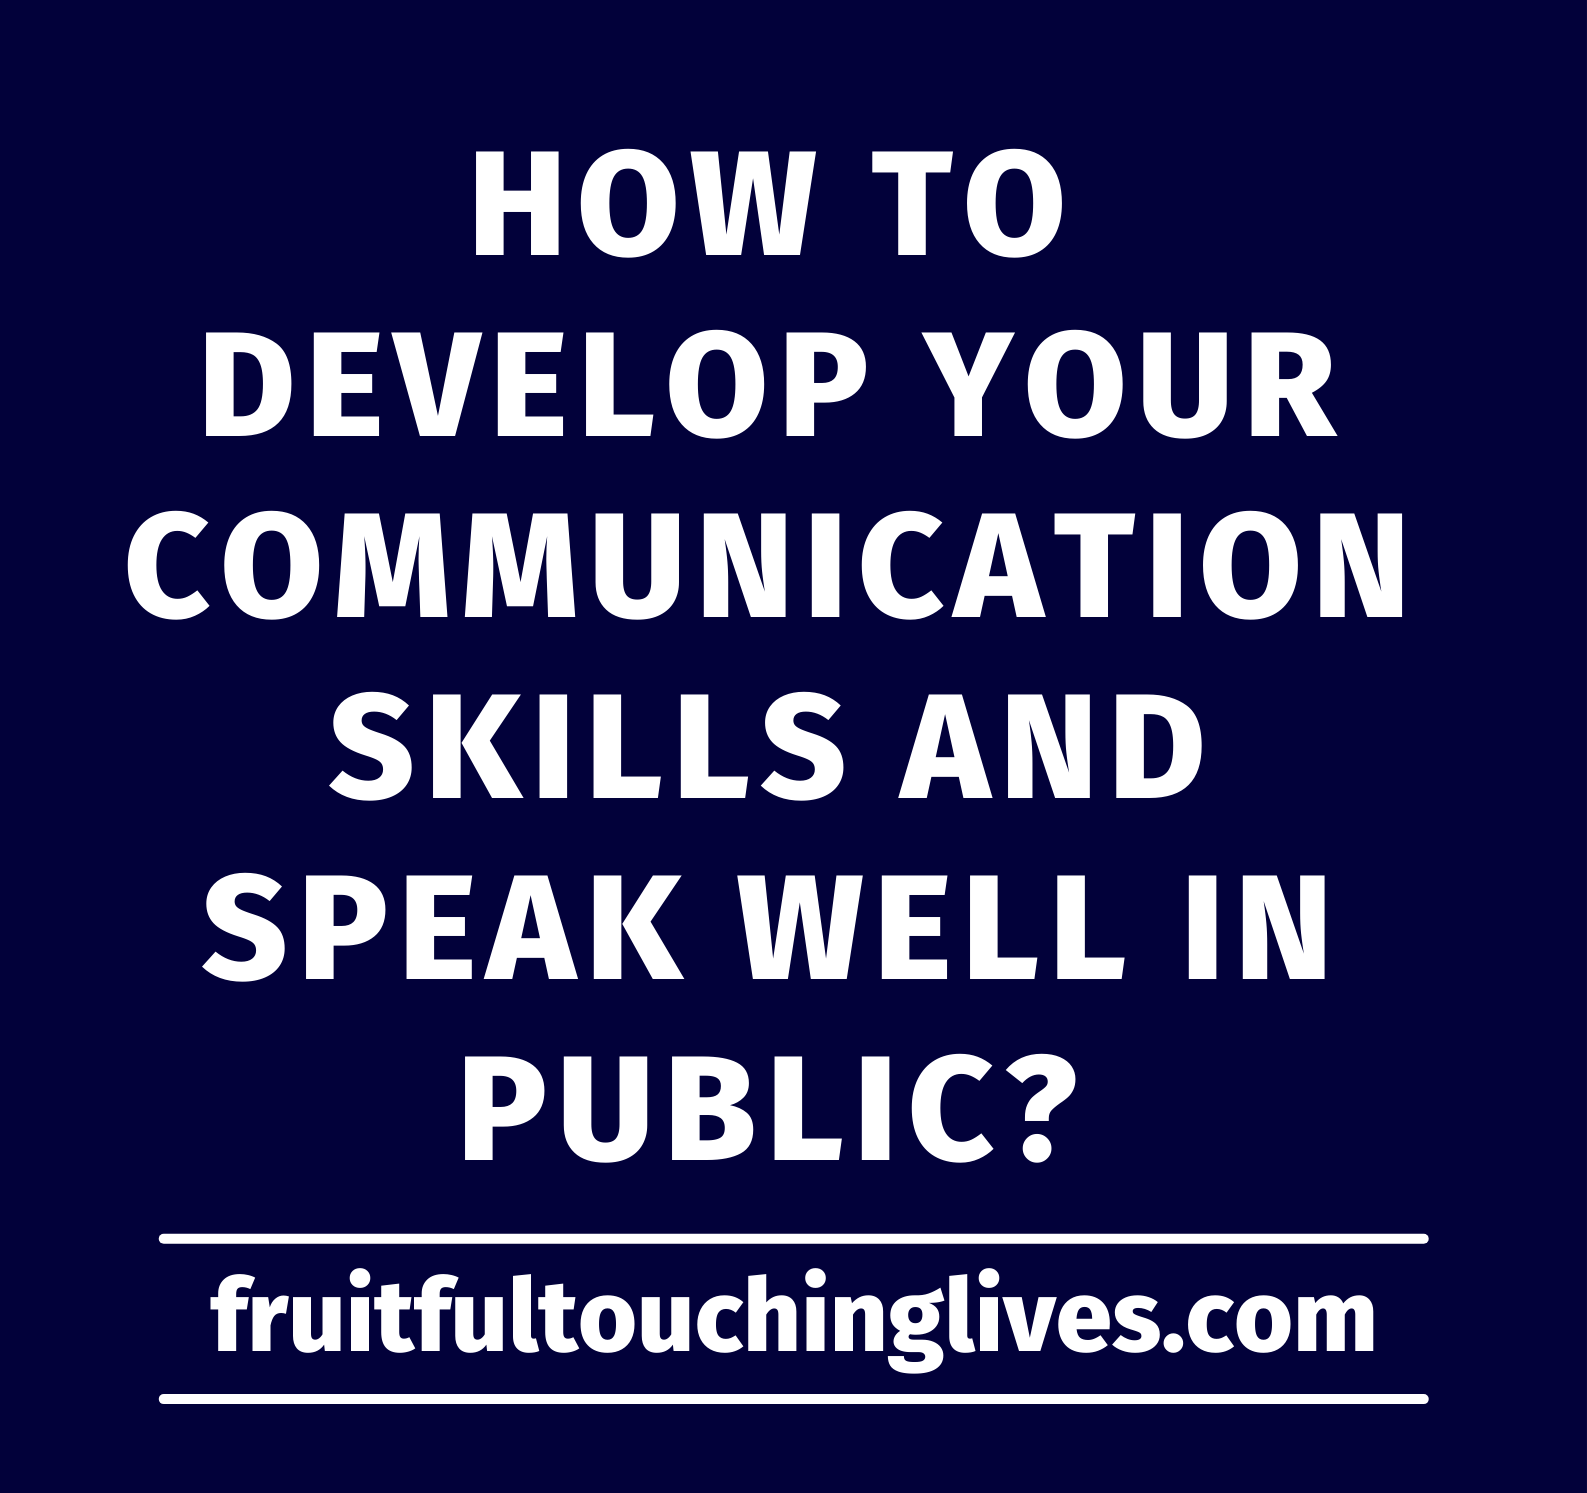 How to develop your communication skills and speak well in public